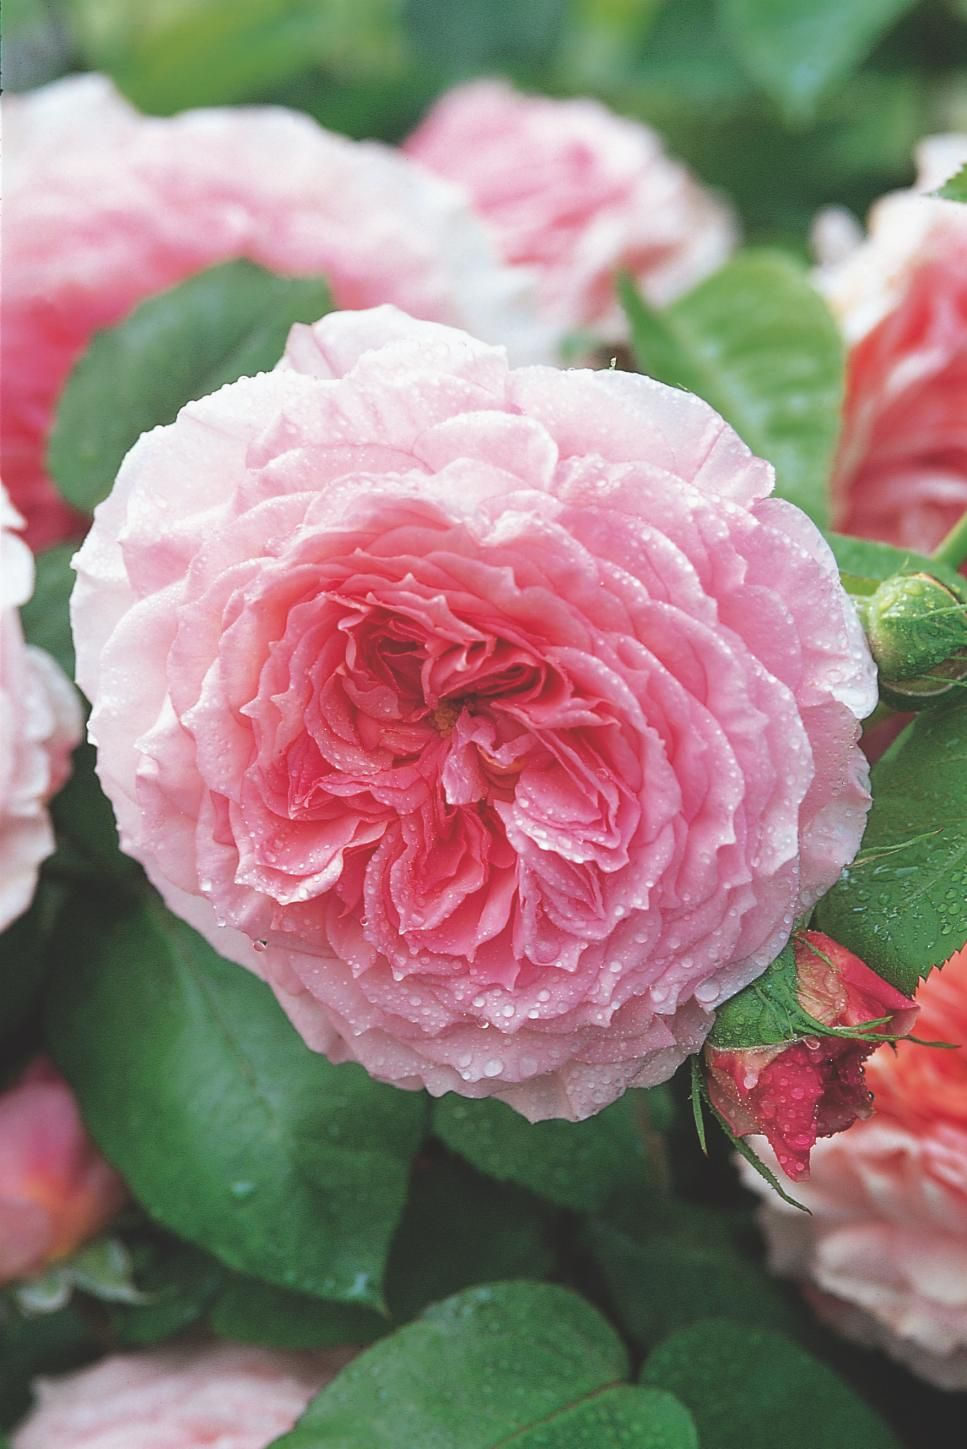 The most popular english roses in america david austin beautiful british rose breeder david austin creates some of the most beautiful flowers in the world find out which roses are most in demand in american gardens izmirmasajfo